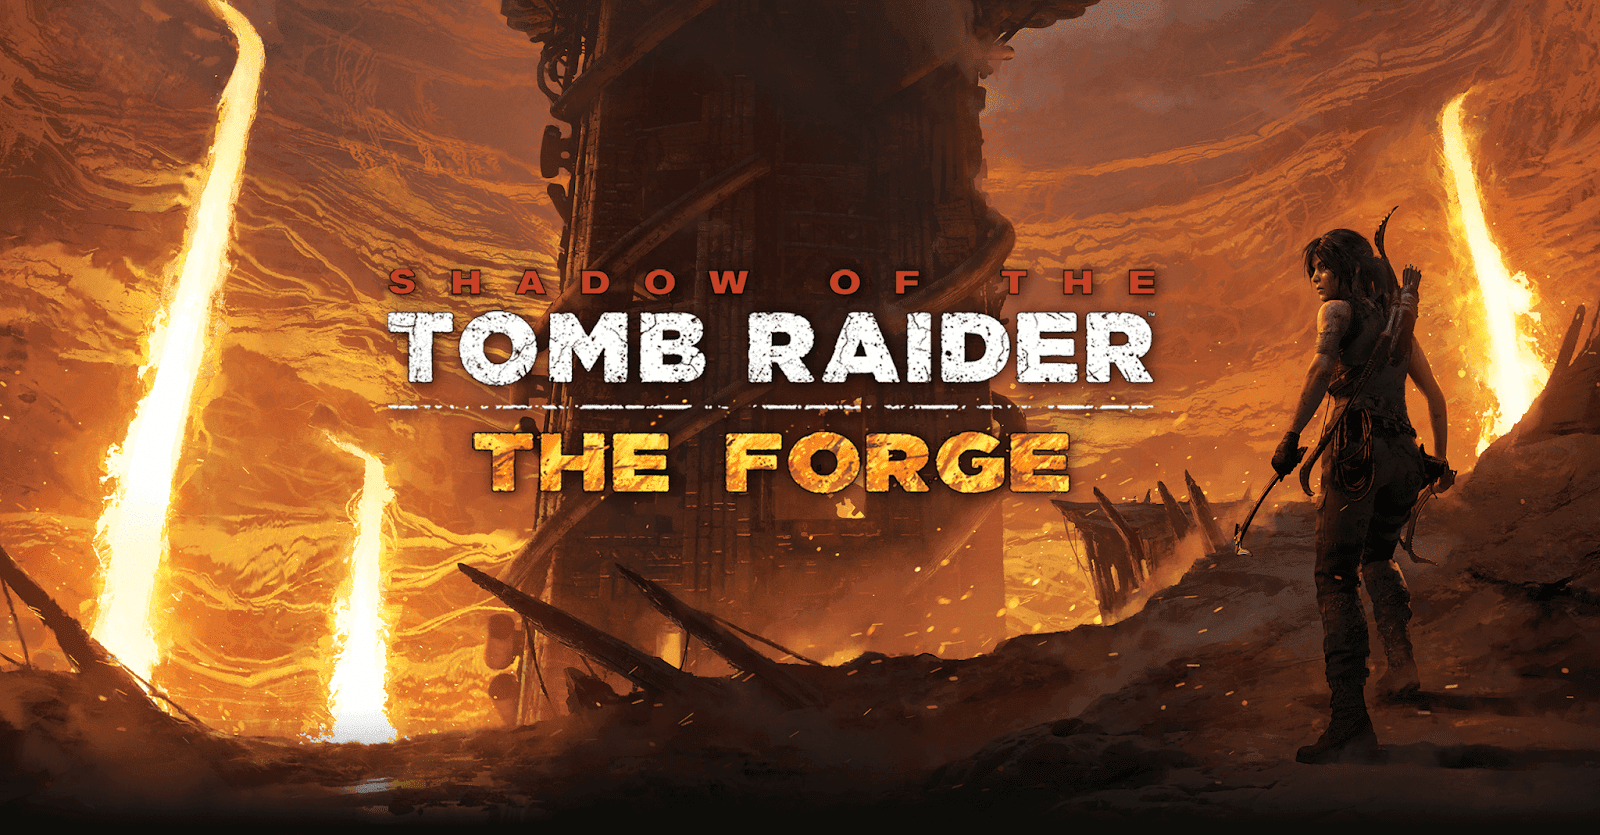 Shadow Of The Tomb Raider 'The Forge' First DLC launches On November 13th